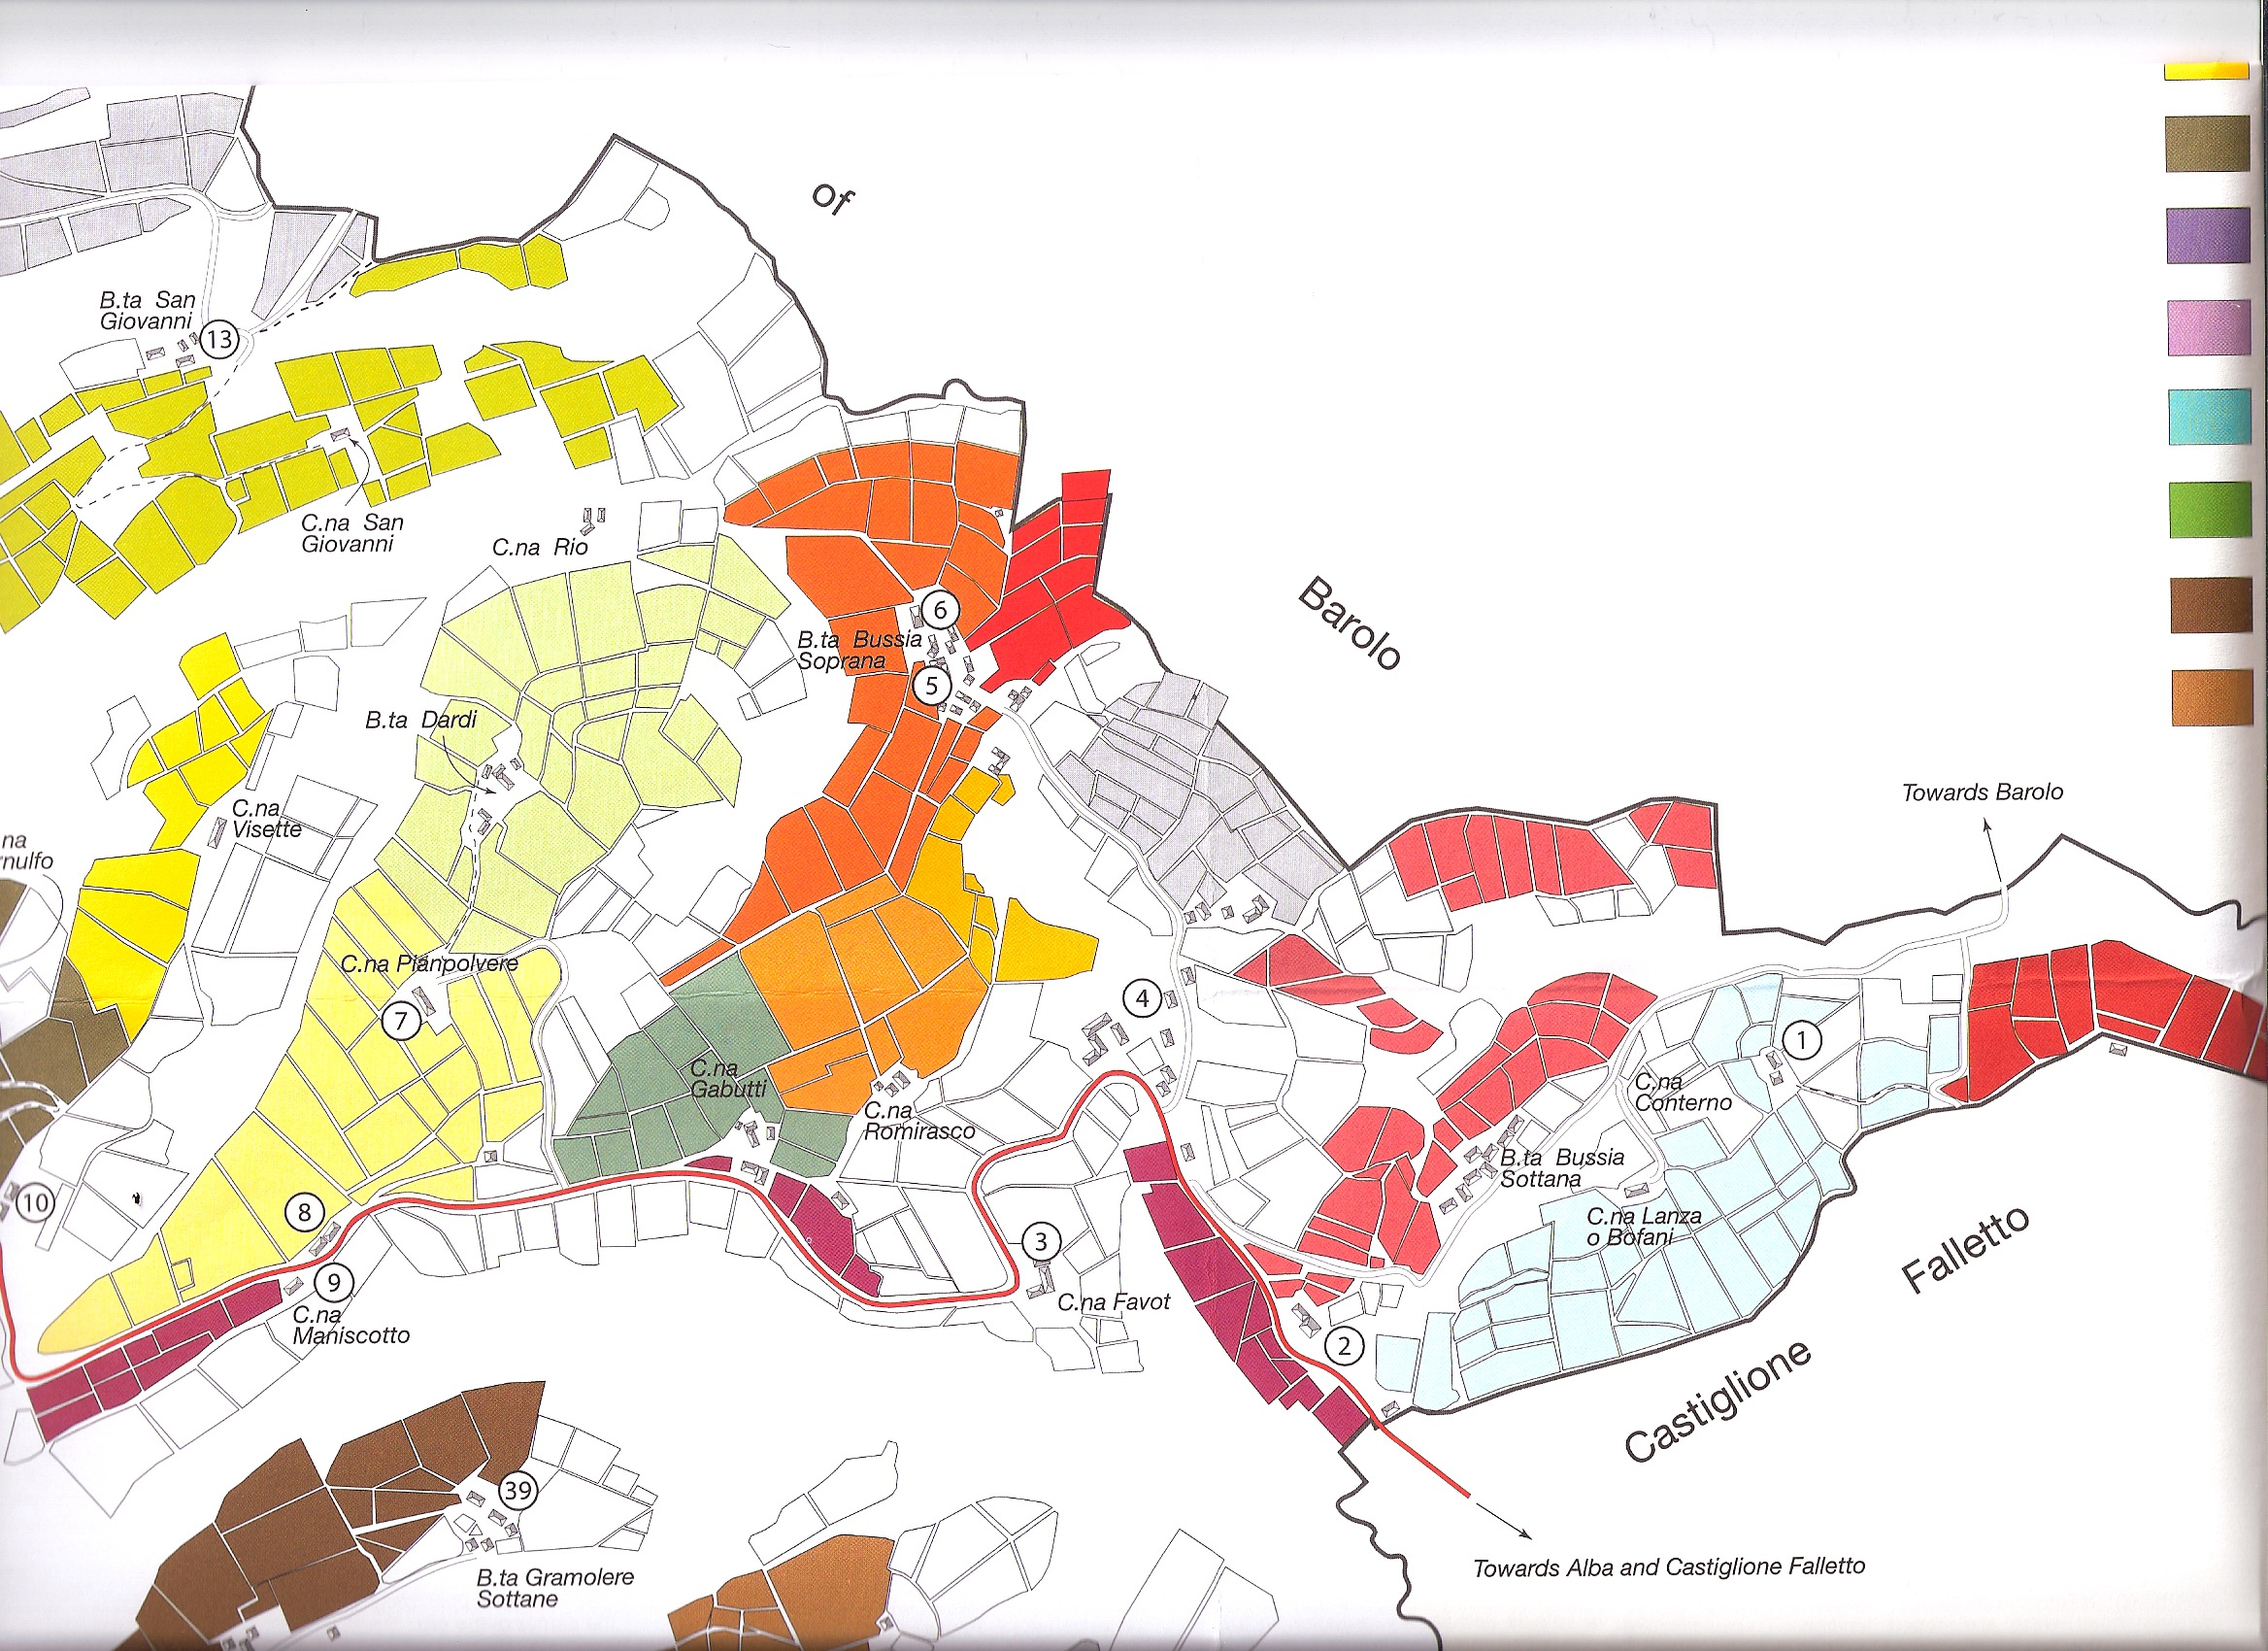 Map of Barolo Wine Region http://ubriaco.wordpress.com/category/other/maps/